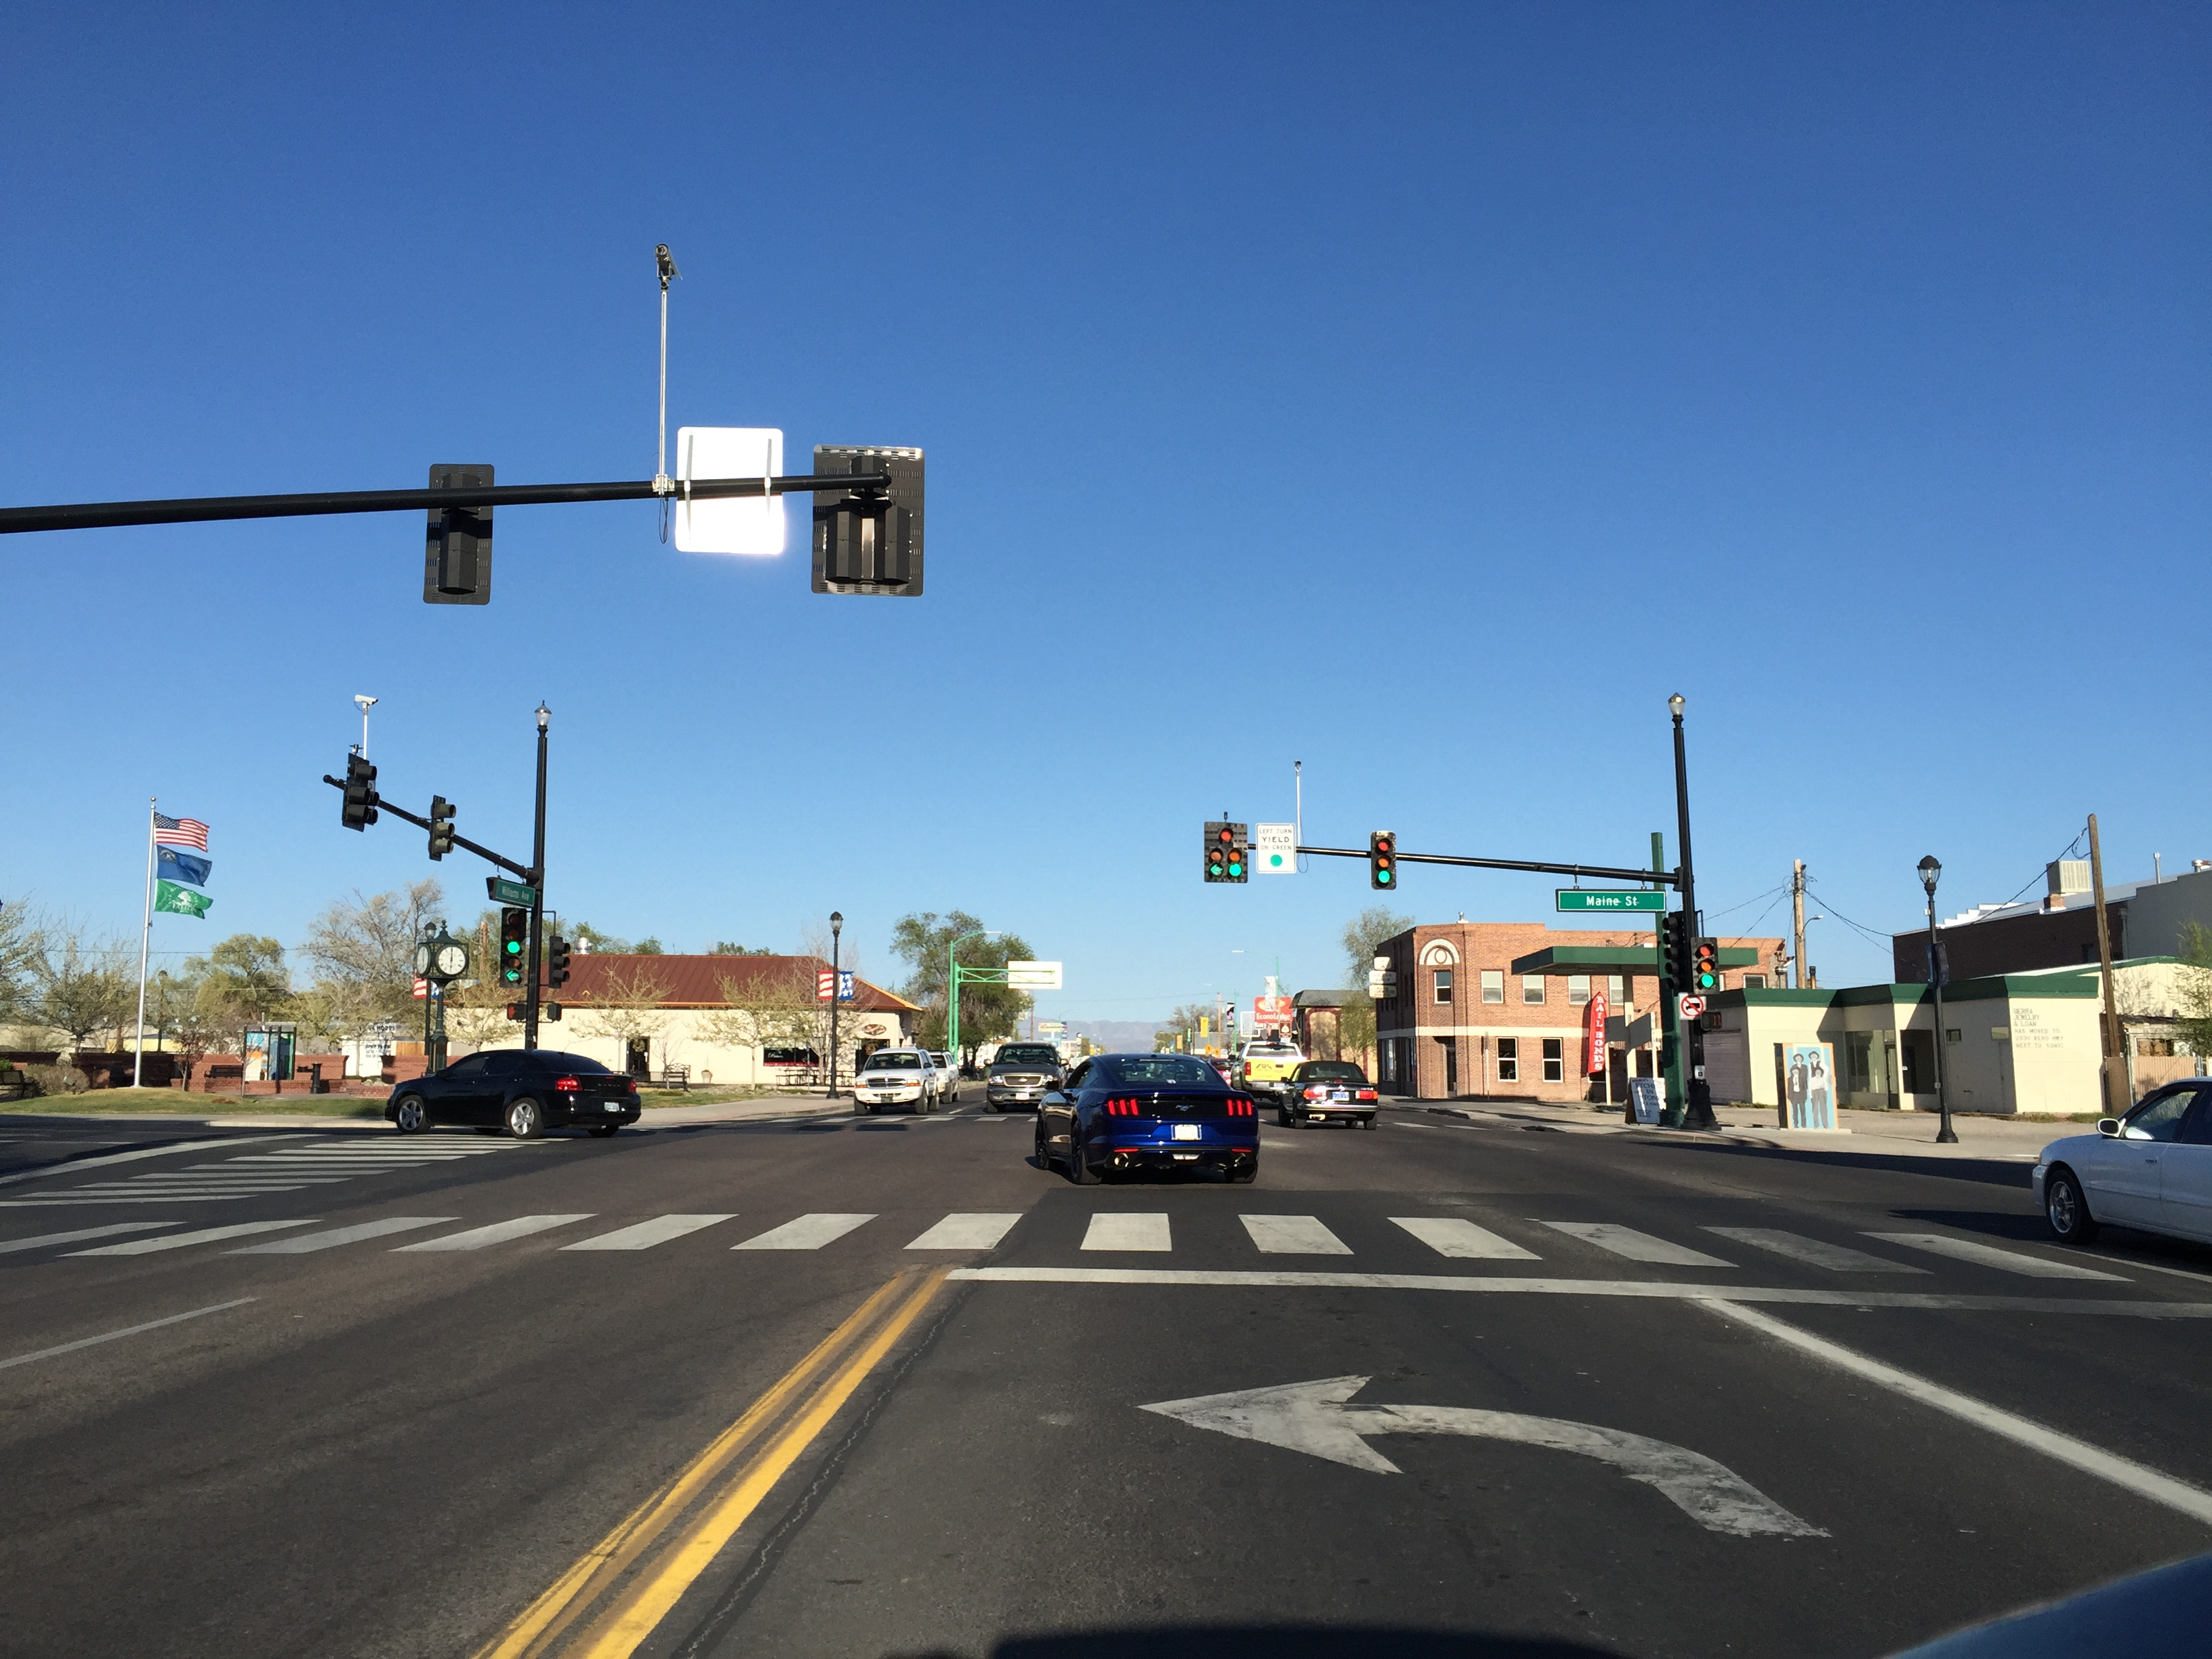 Fallon Nevada Of Commons At U Junction The Along With 17 Street File 95 Wikimedia s Intersection Maine Avenue In jpg Williams 50 And 2015-04-02 - View 36 Route East